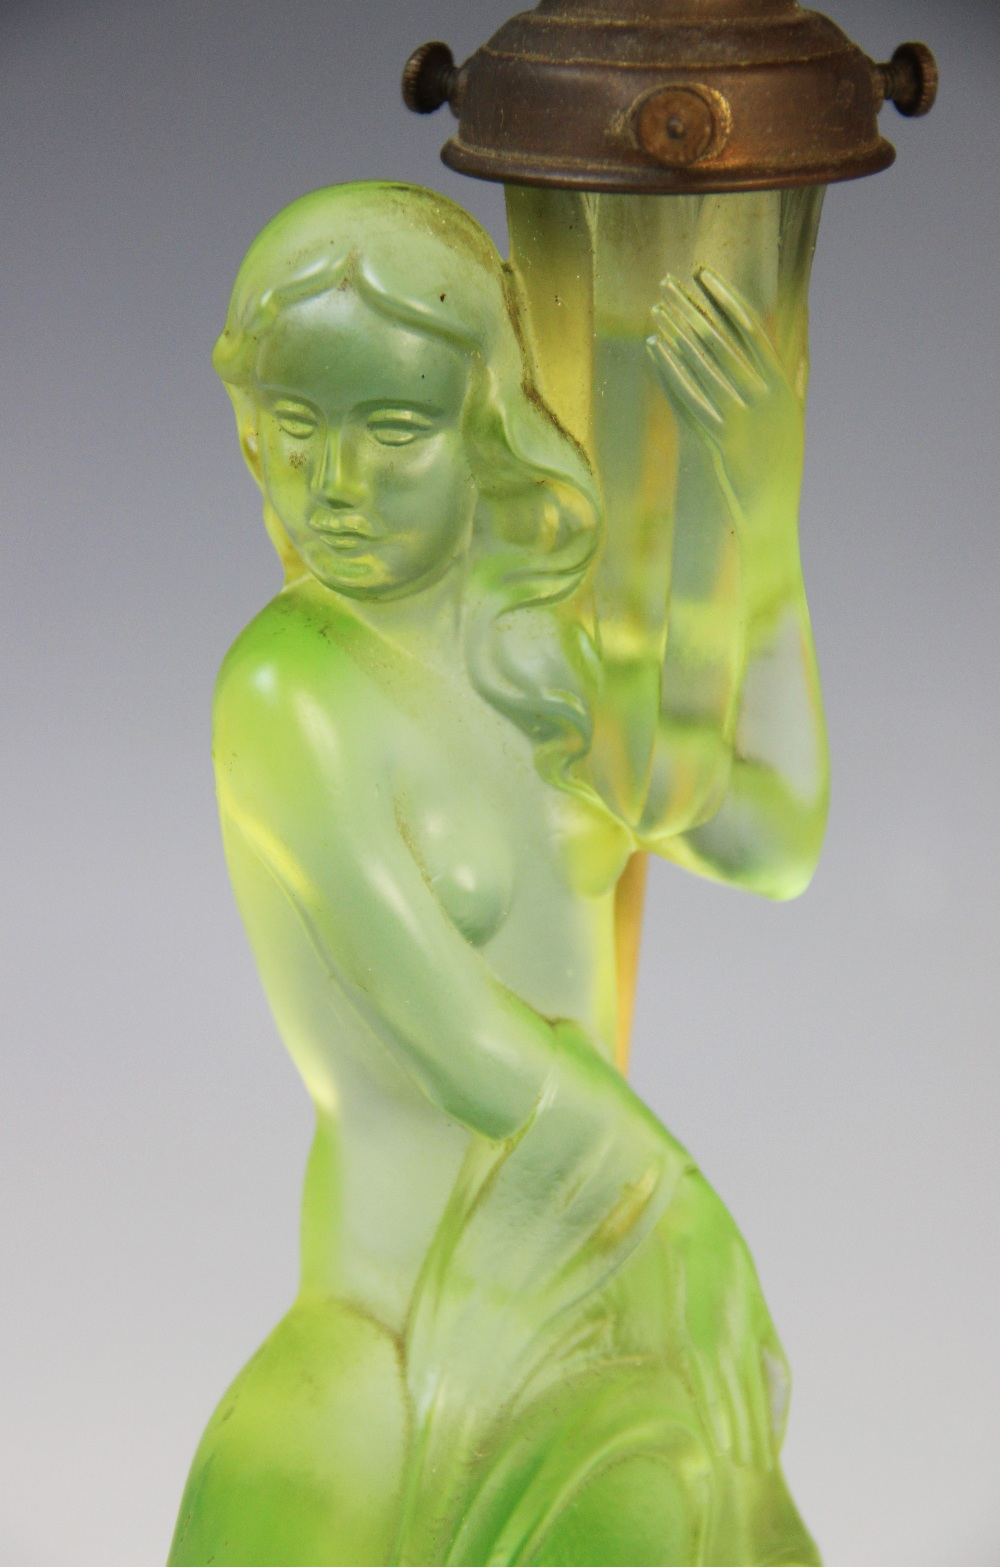 An Art Deco green glass table lamp by Walther & Sohne, early 20th century, modelled as a nymph on - Image 2 of 2